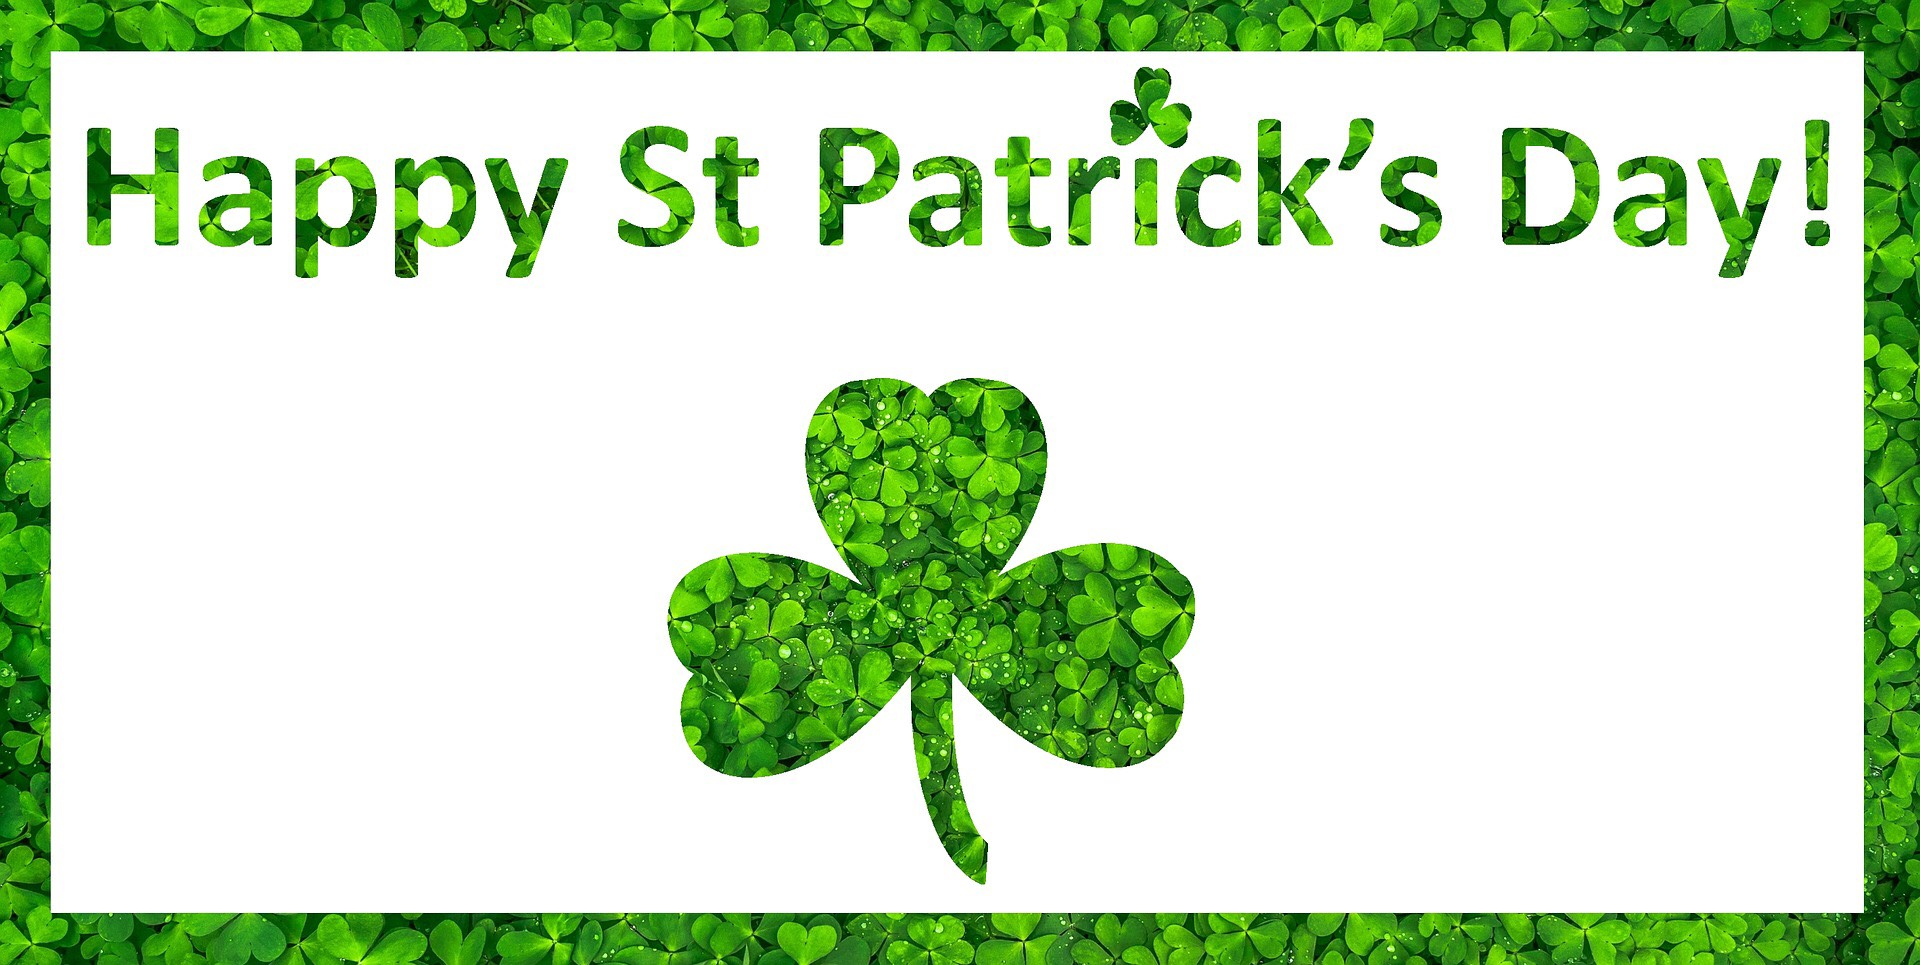 Happy St. Patrick's Day image with shamrocks